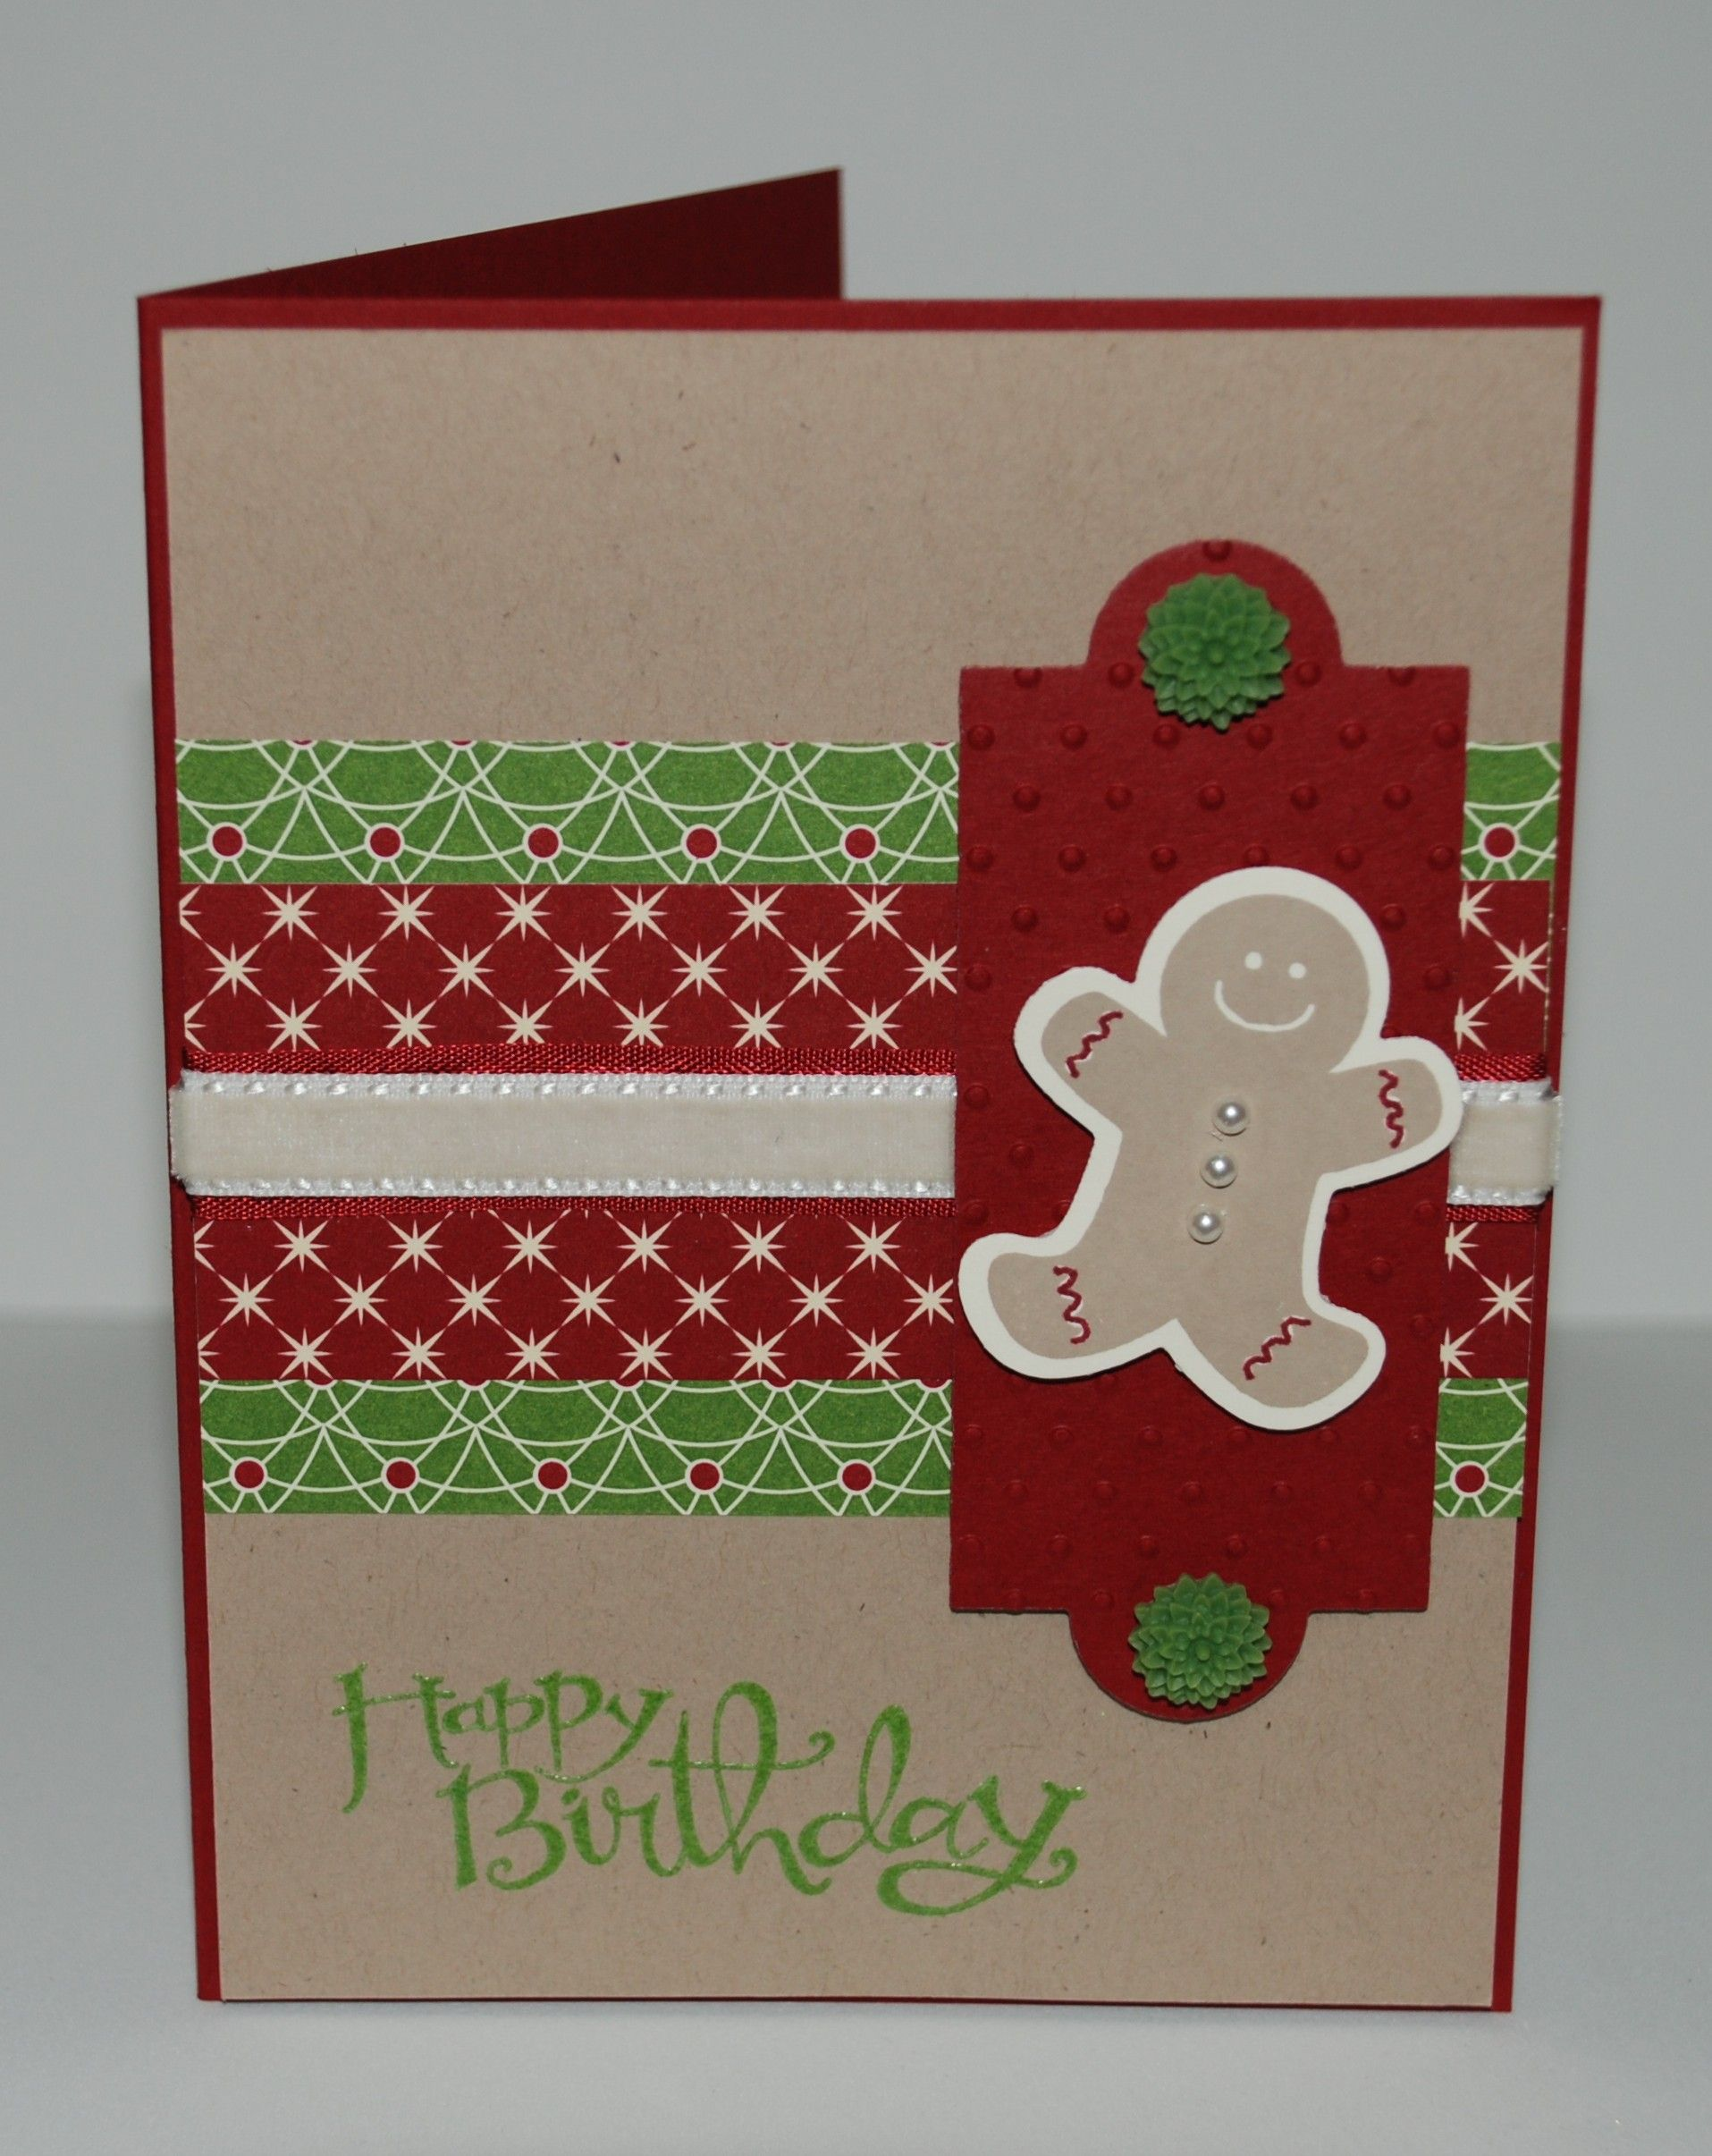 A birthday card for my granddaughter using Stampin' Up! sets 'Scentsational Season' and 'Sassy Salutation' and 'Be of Good Cheer' Designer Series Paper.